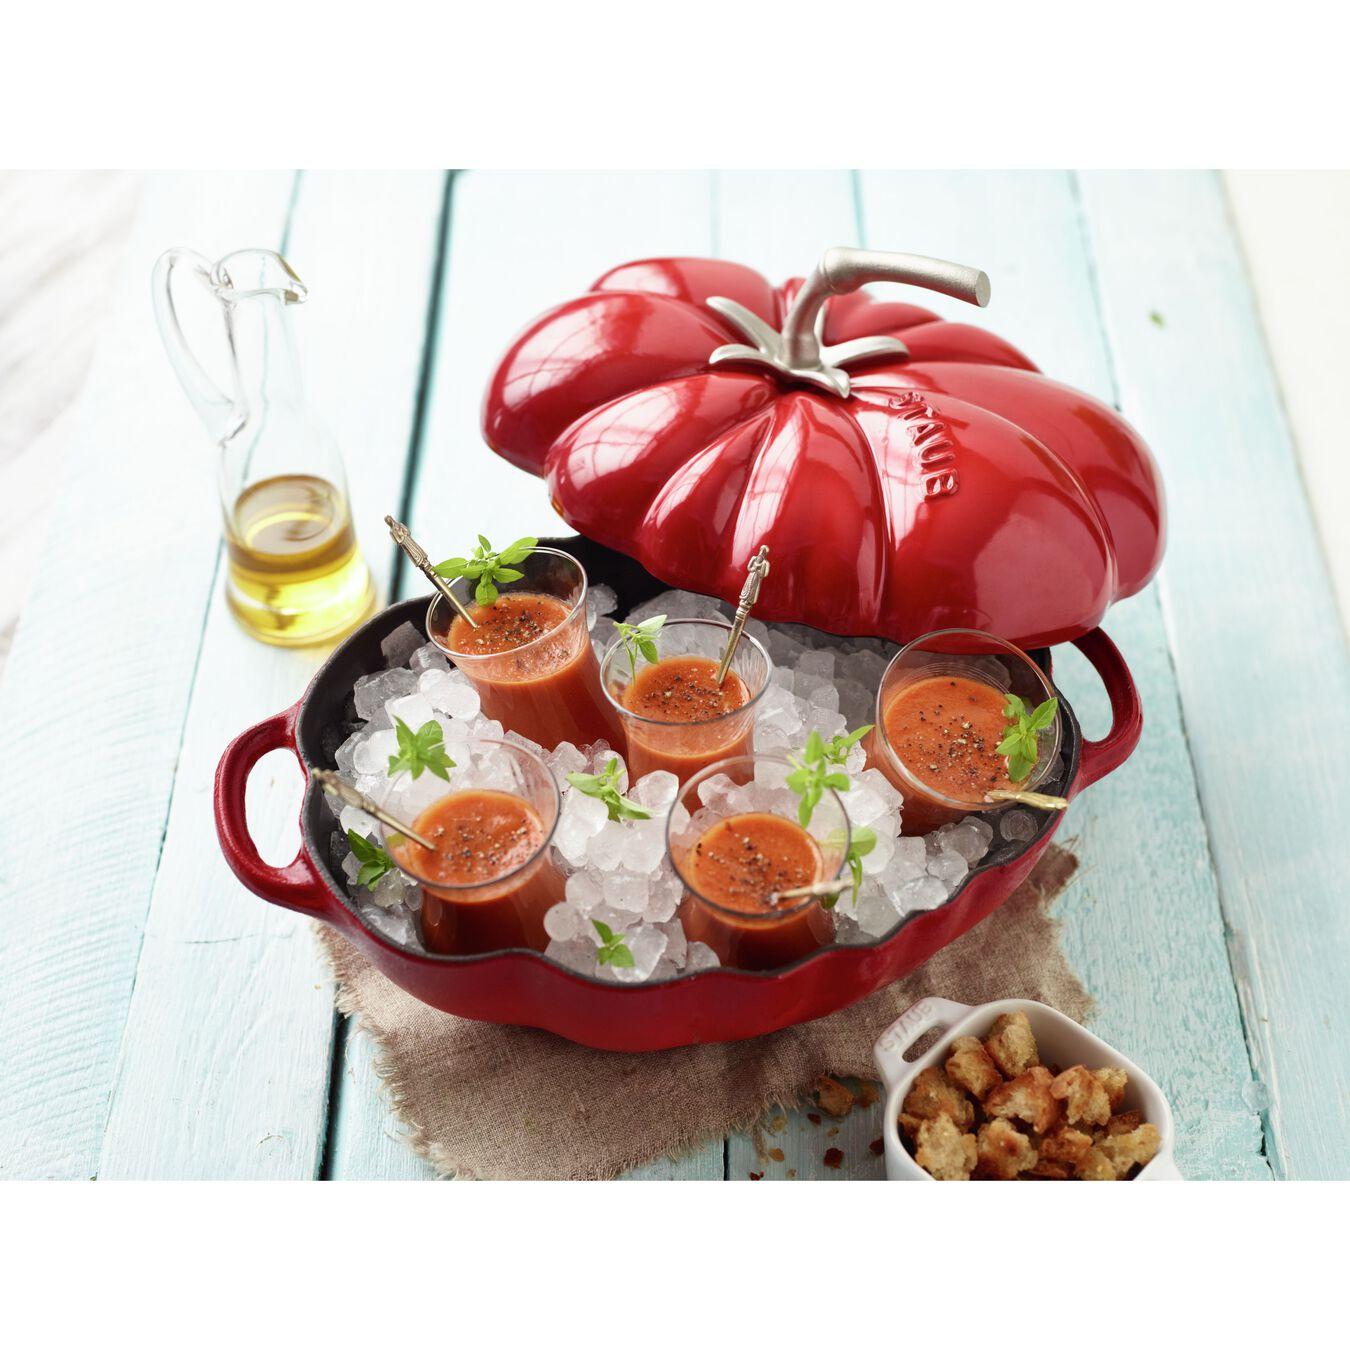 Cocotte 25 cm, Tomate, Kirsch-Rot, Gusseisen,,large 3